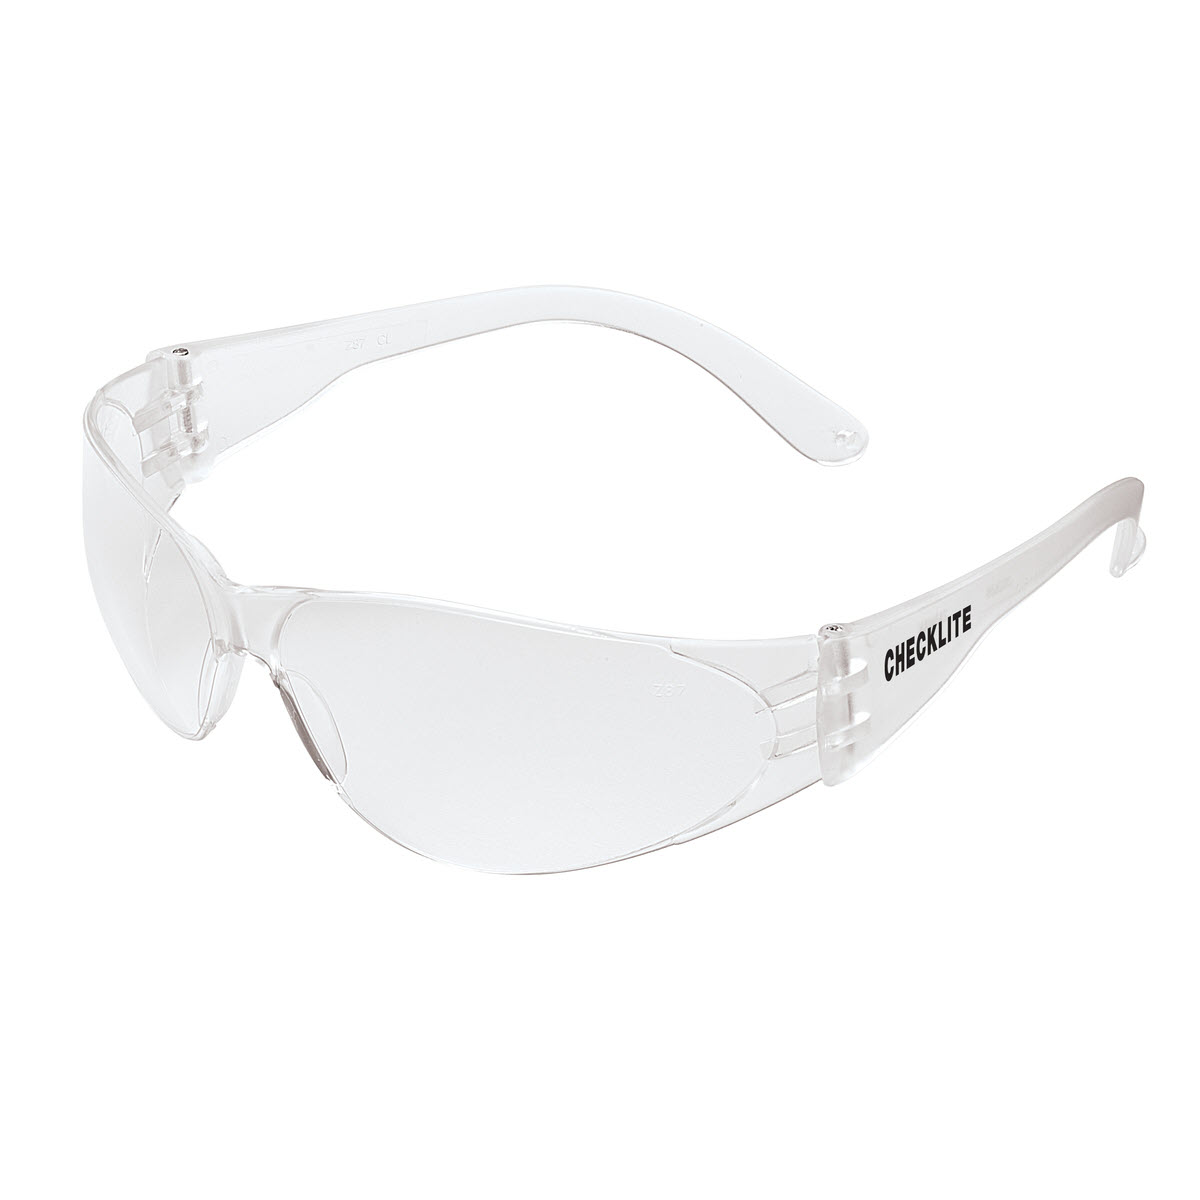 Checklite® CL1 Series Safety Glasses, Clear Temples and Lens